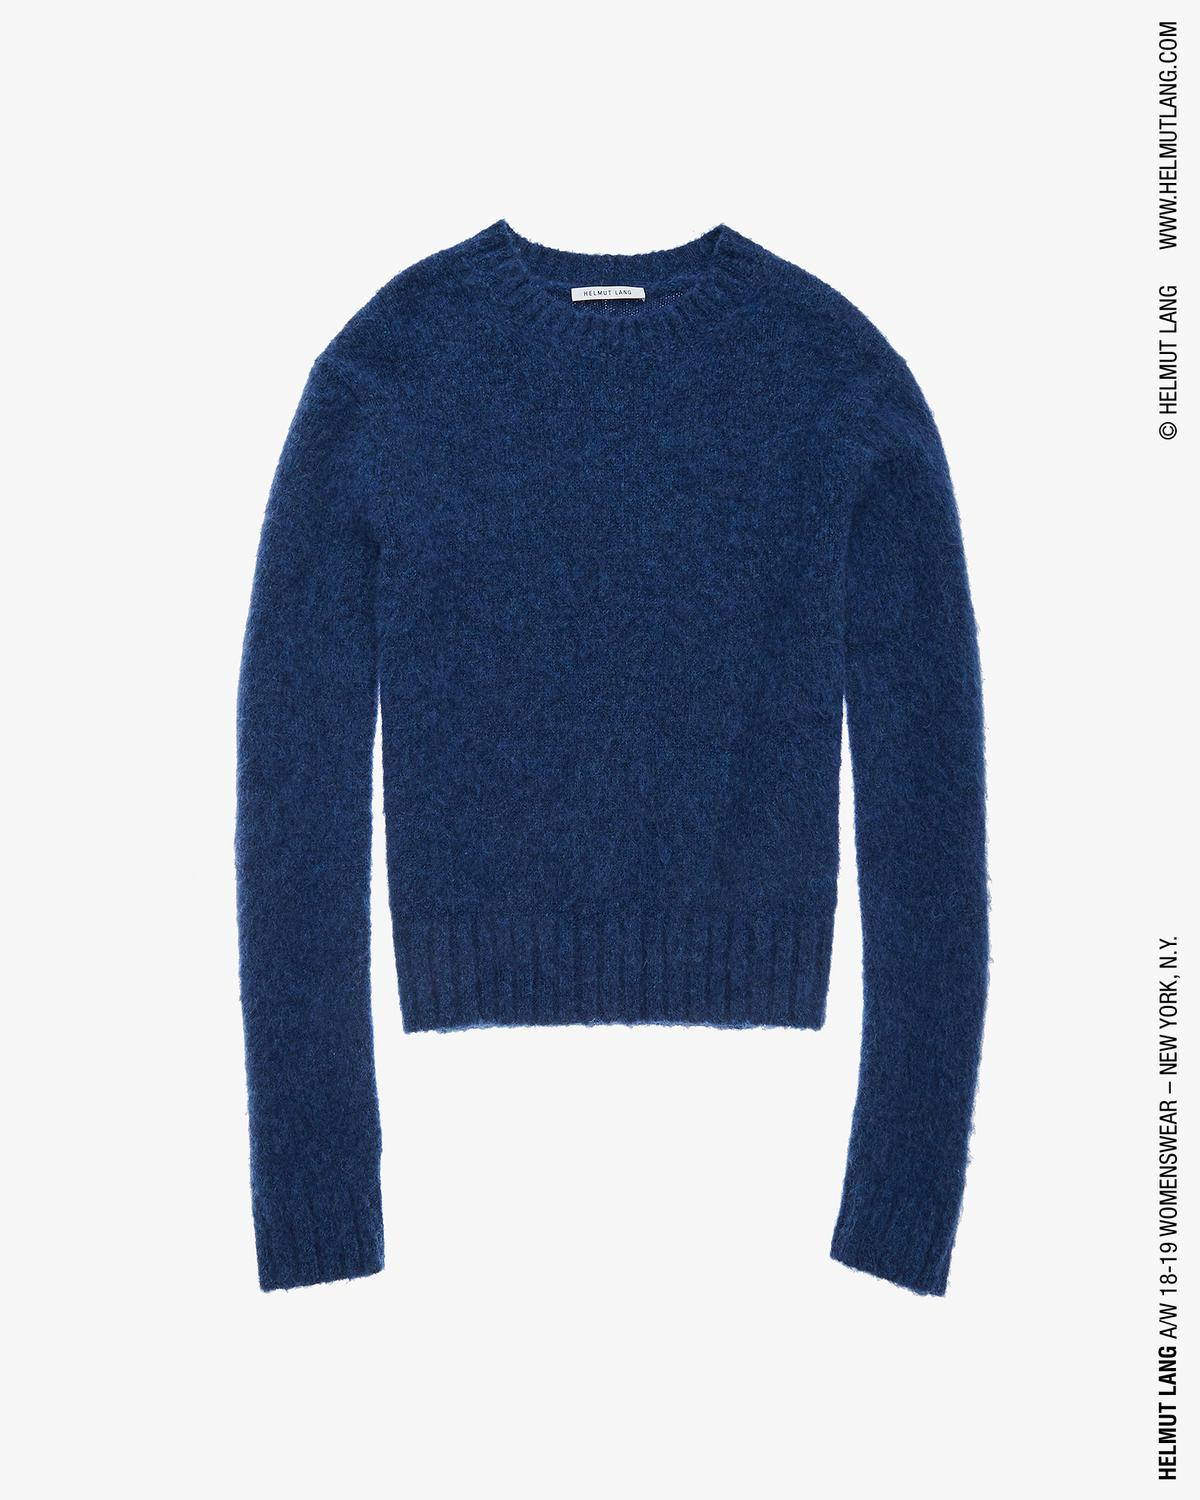 BRUSHED CREWNECK SWEATER